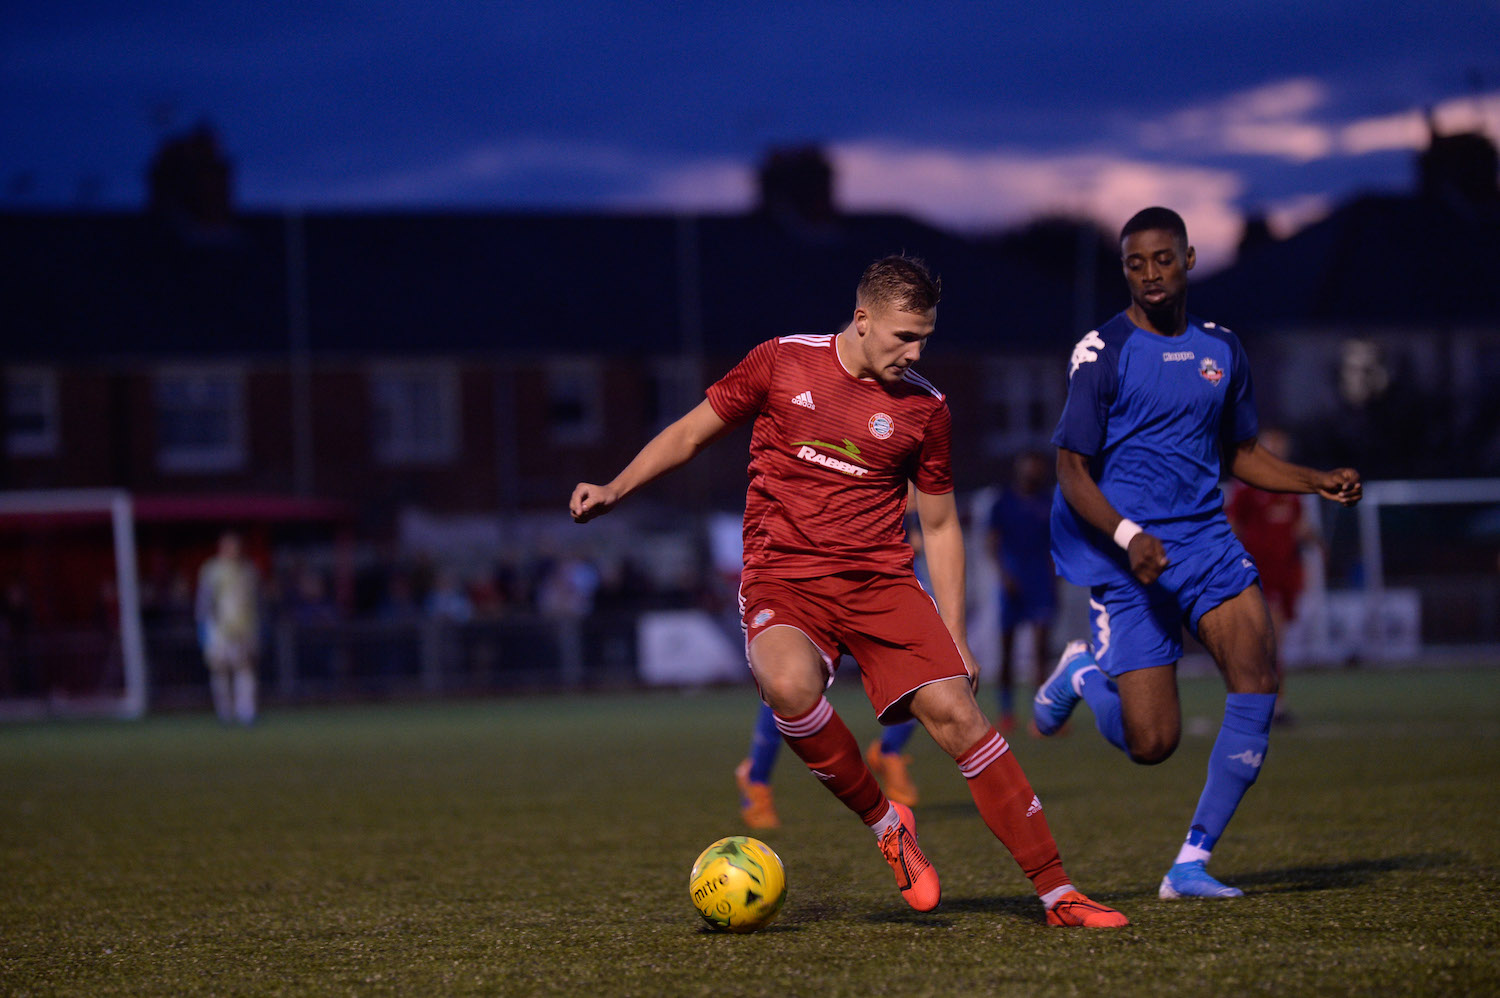 Read the full article - Lewes vs Worthing – 29/09/20